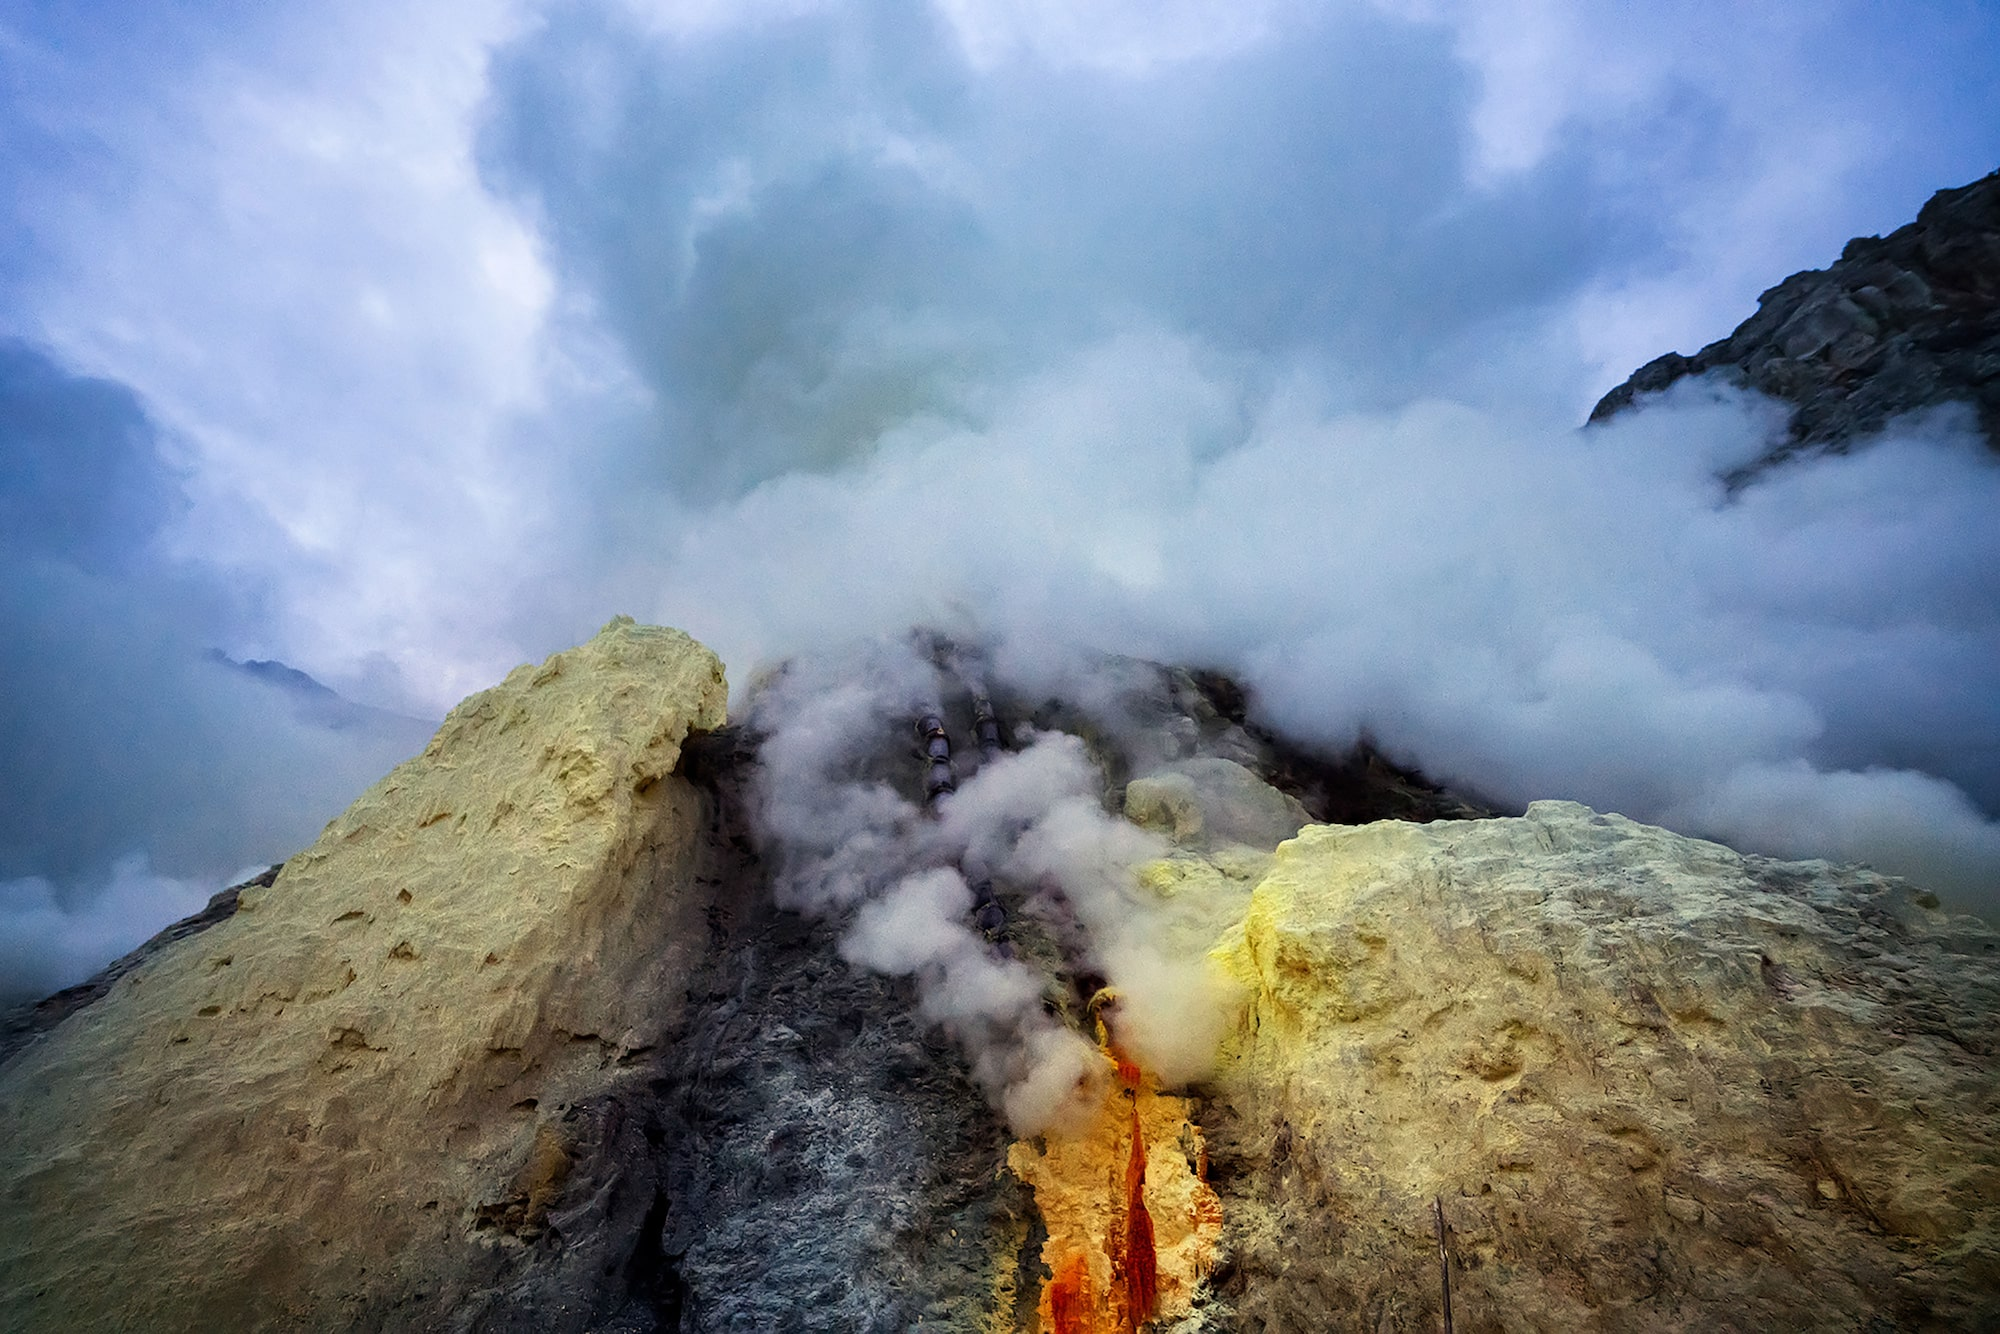 andrea frazzetta sony alpha 7RII clouds of sulfur gas billow from rocks